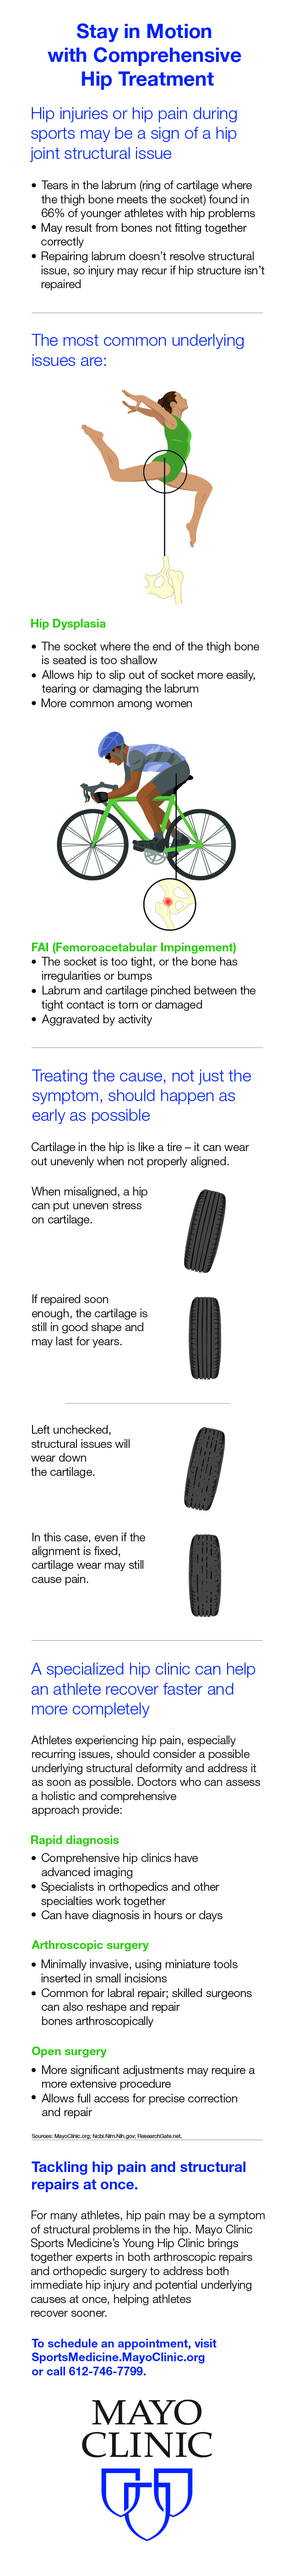 Infographic for hip pain and orthopedic surgery